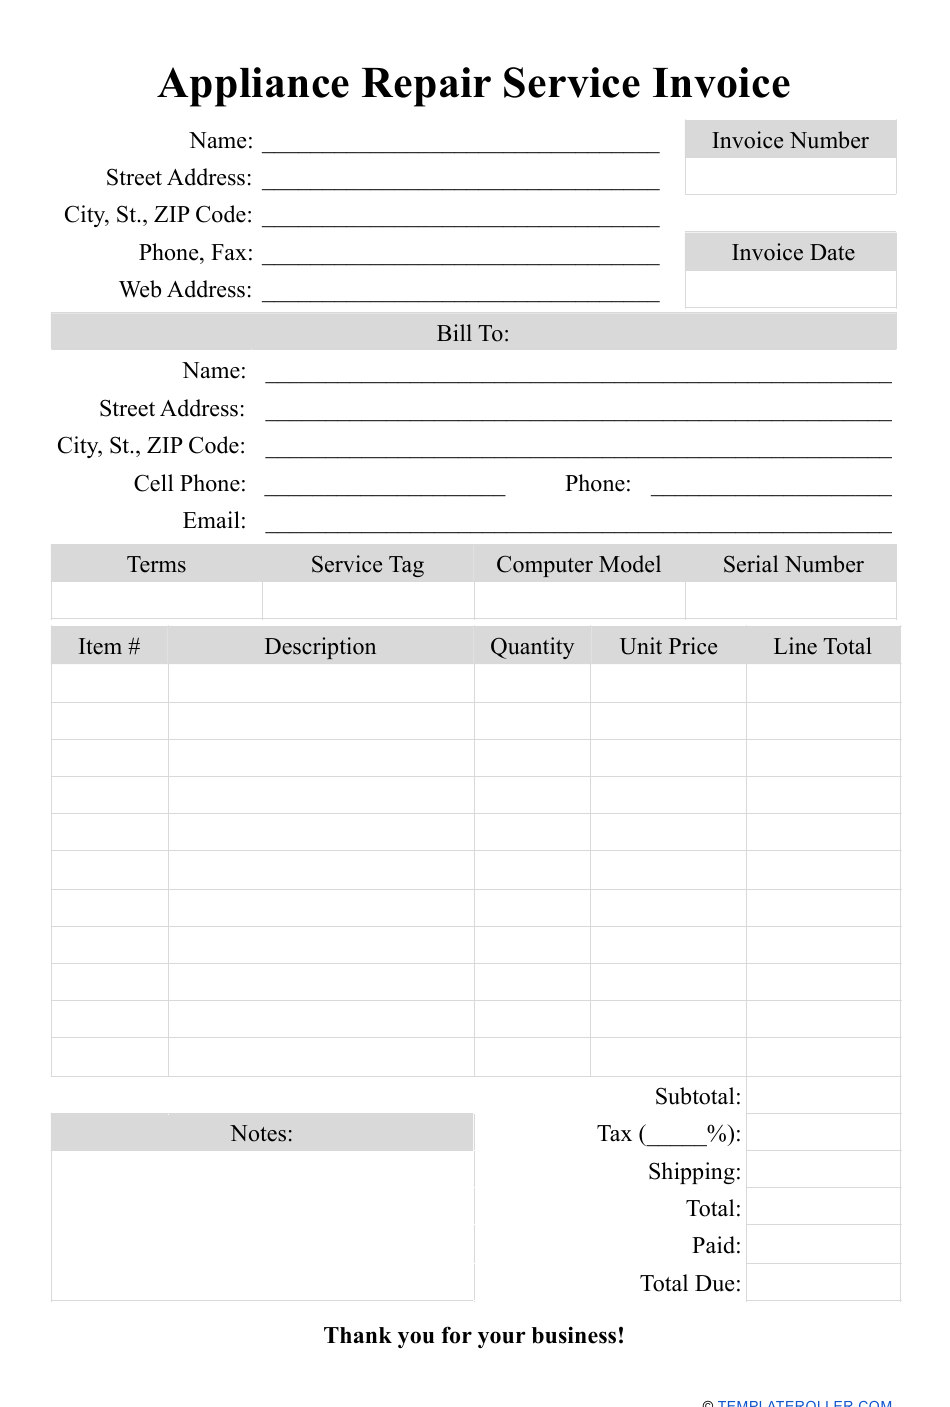 Appliance Repair Service Invoice Template Download Printable Pdf Templateroller